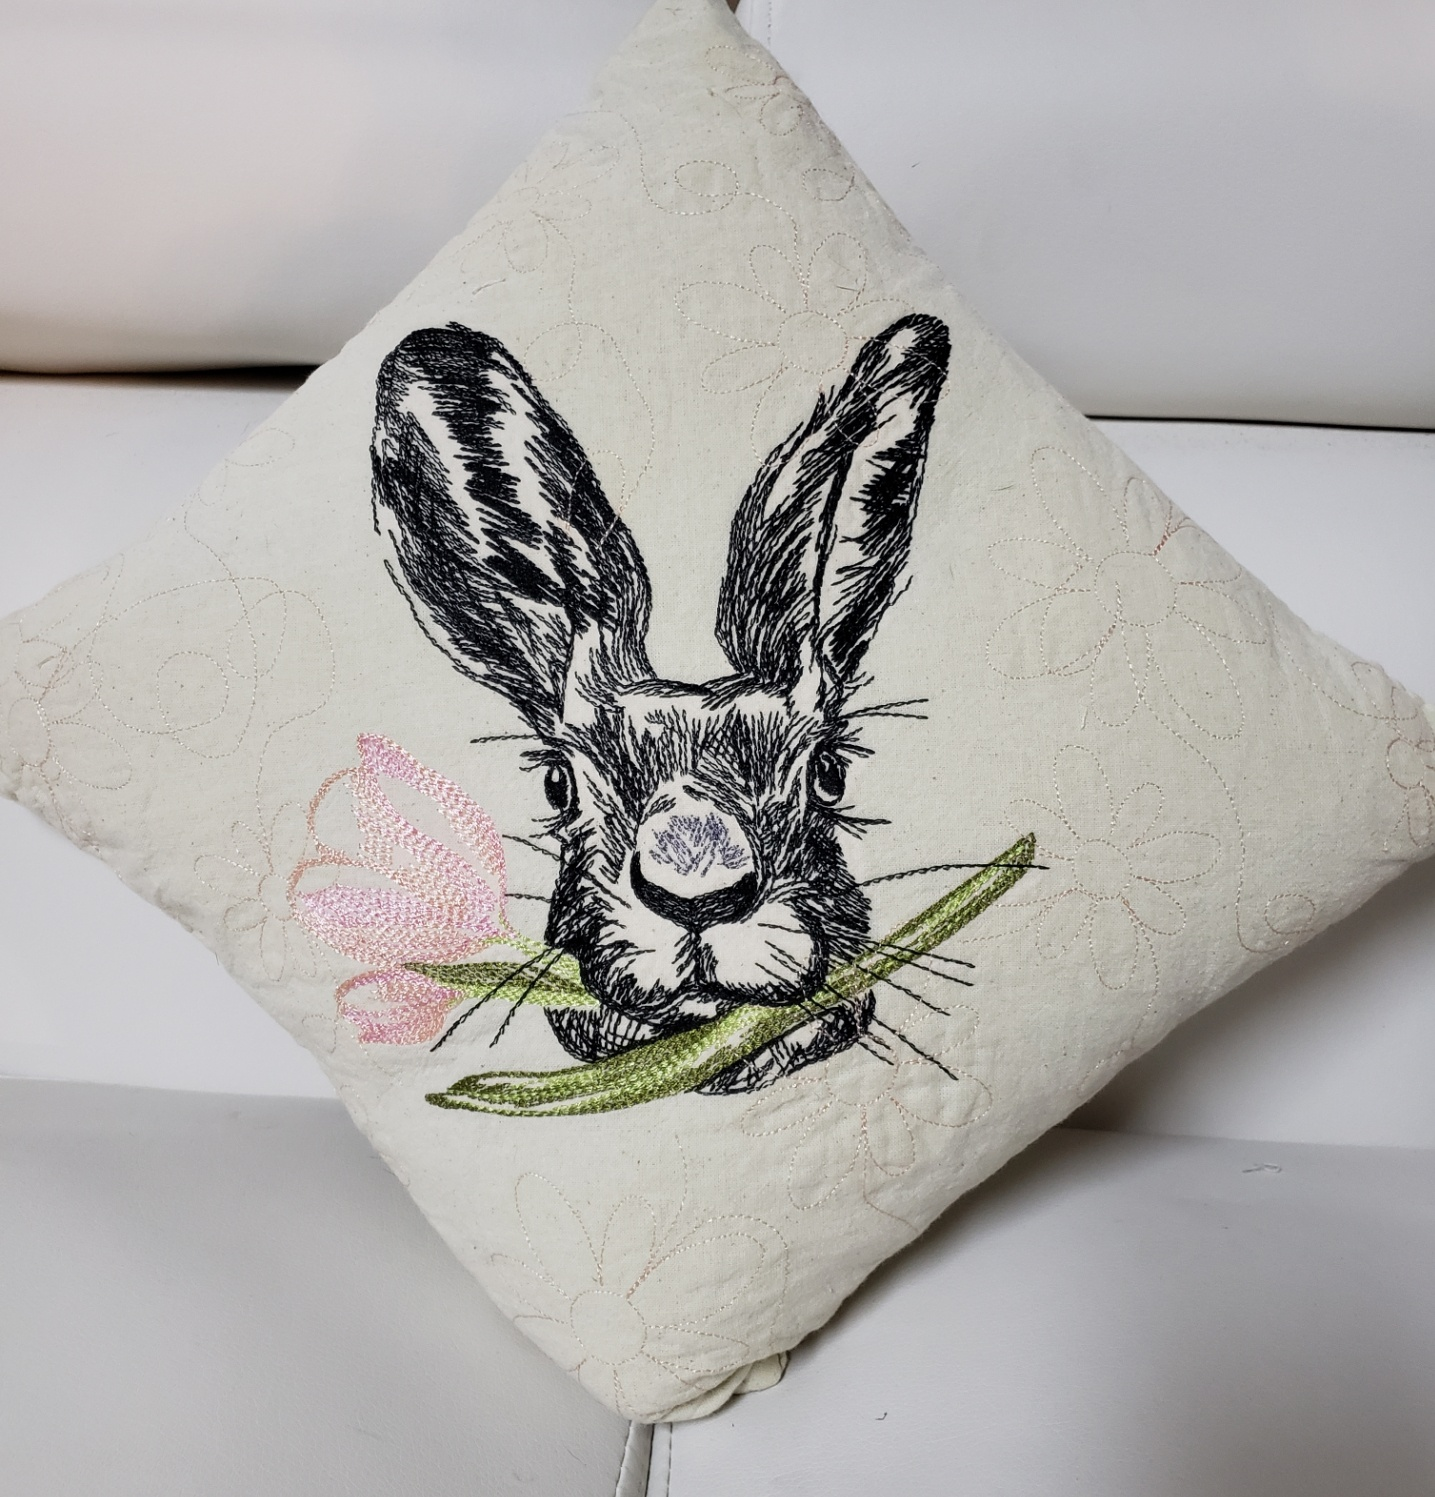 Boy Bunny 16 x 16 chshion